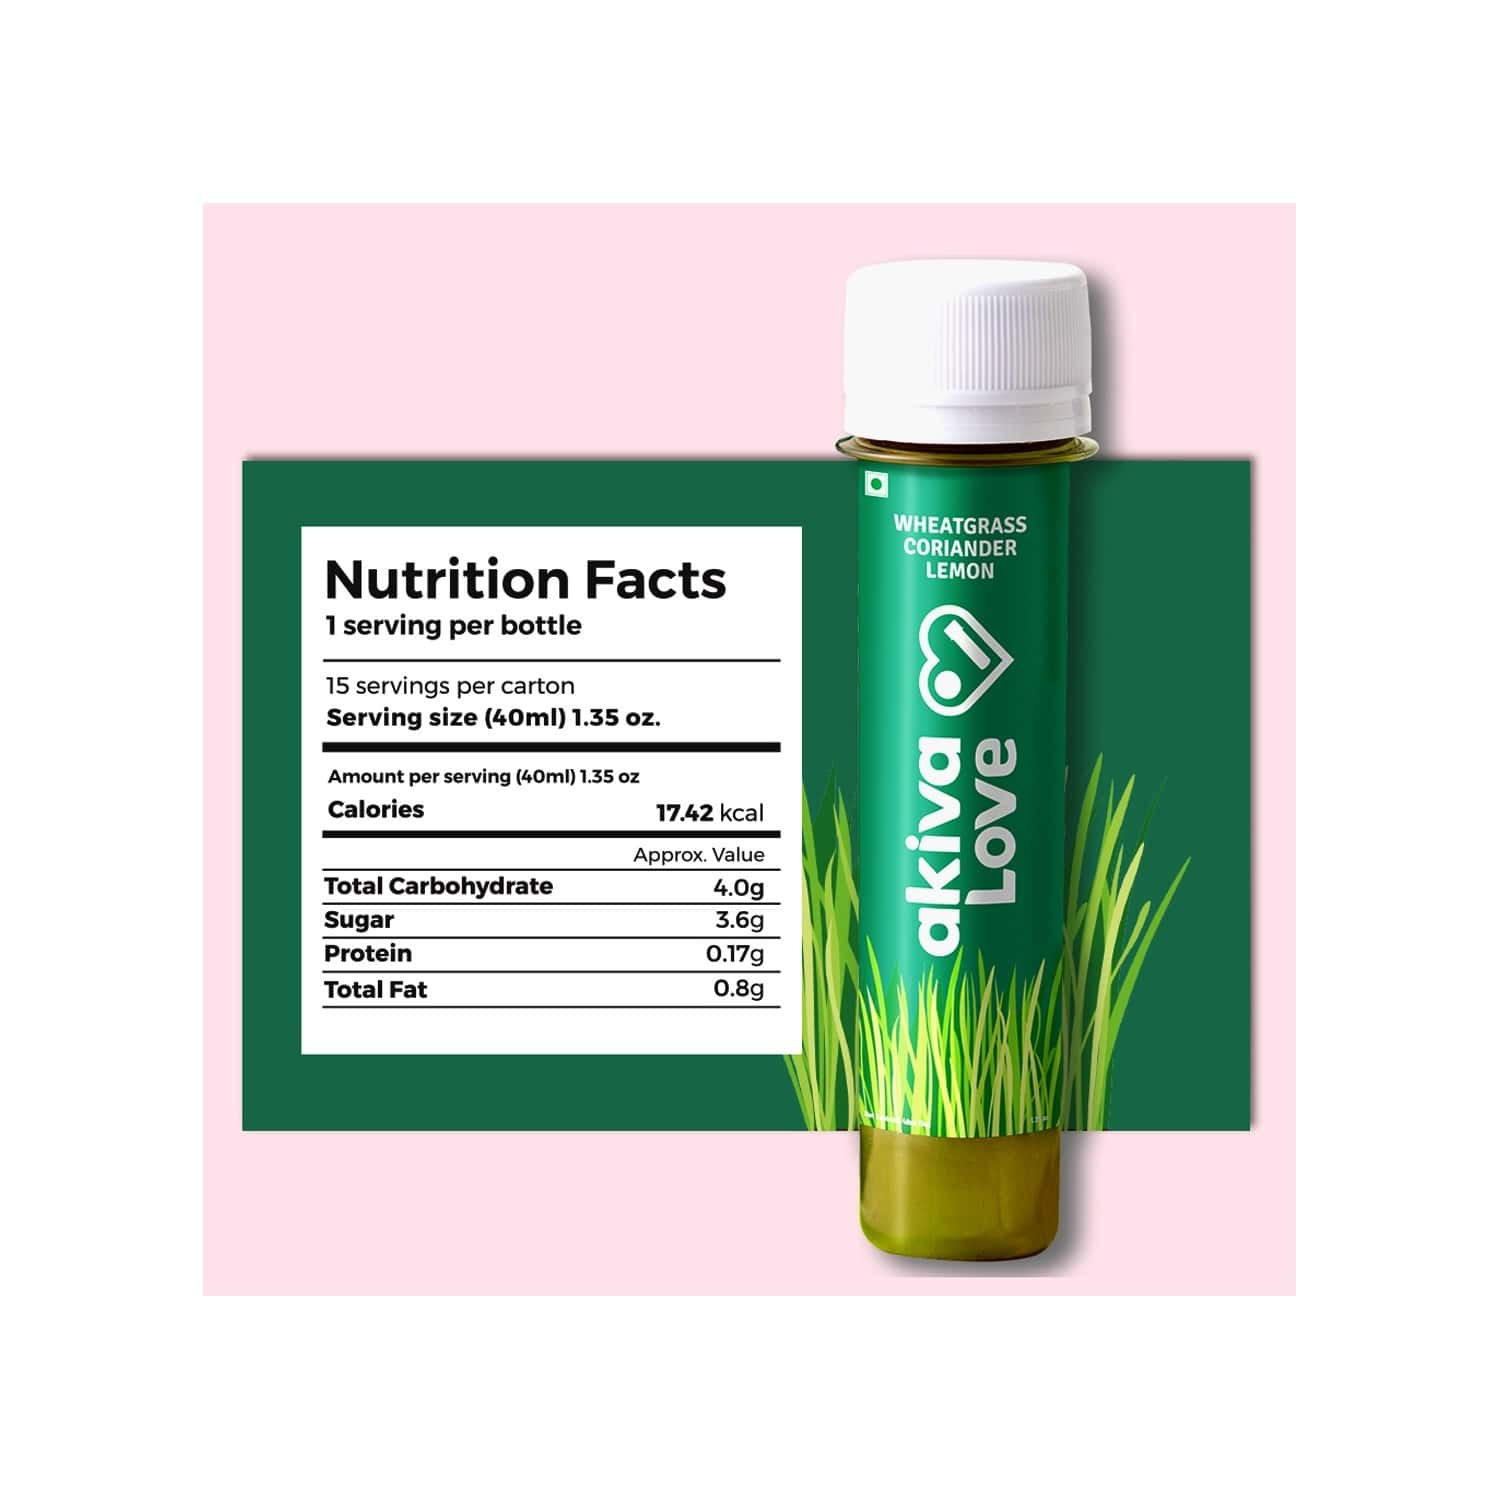 Akiva Love Wellness Shots With Wheatgrass Lemon & Coriander (15 Shots X 40ml) - 600ml